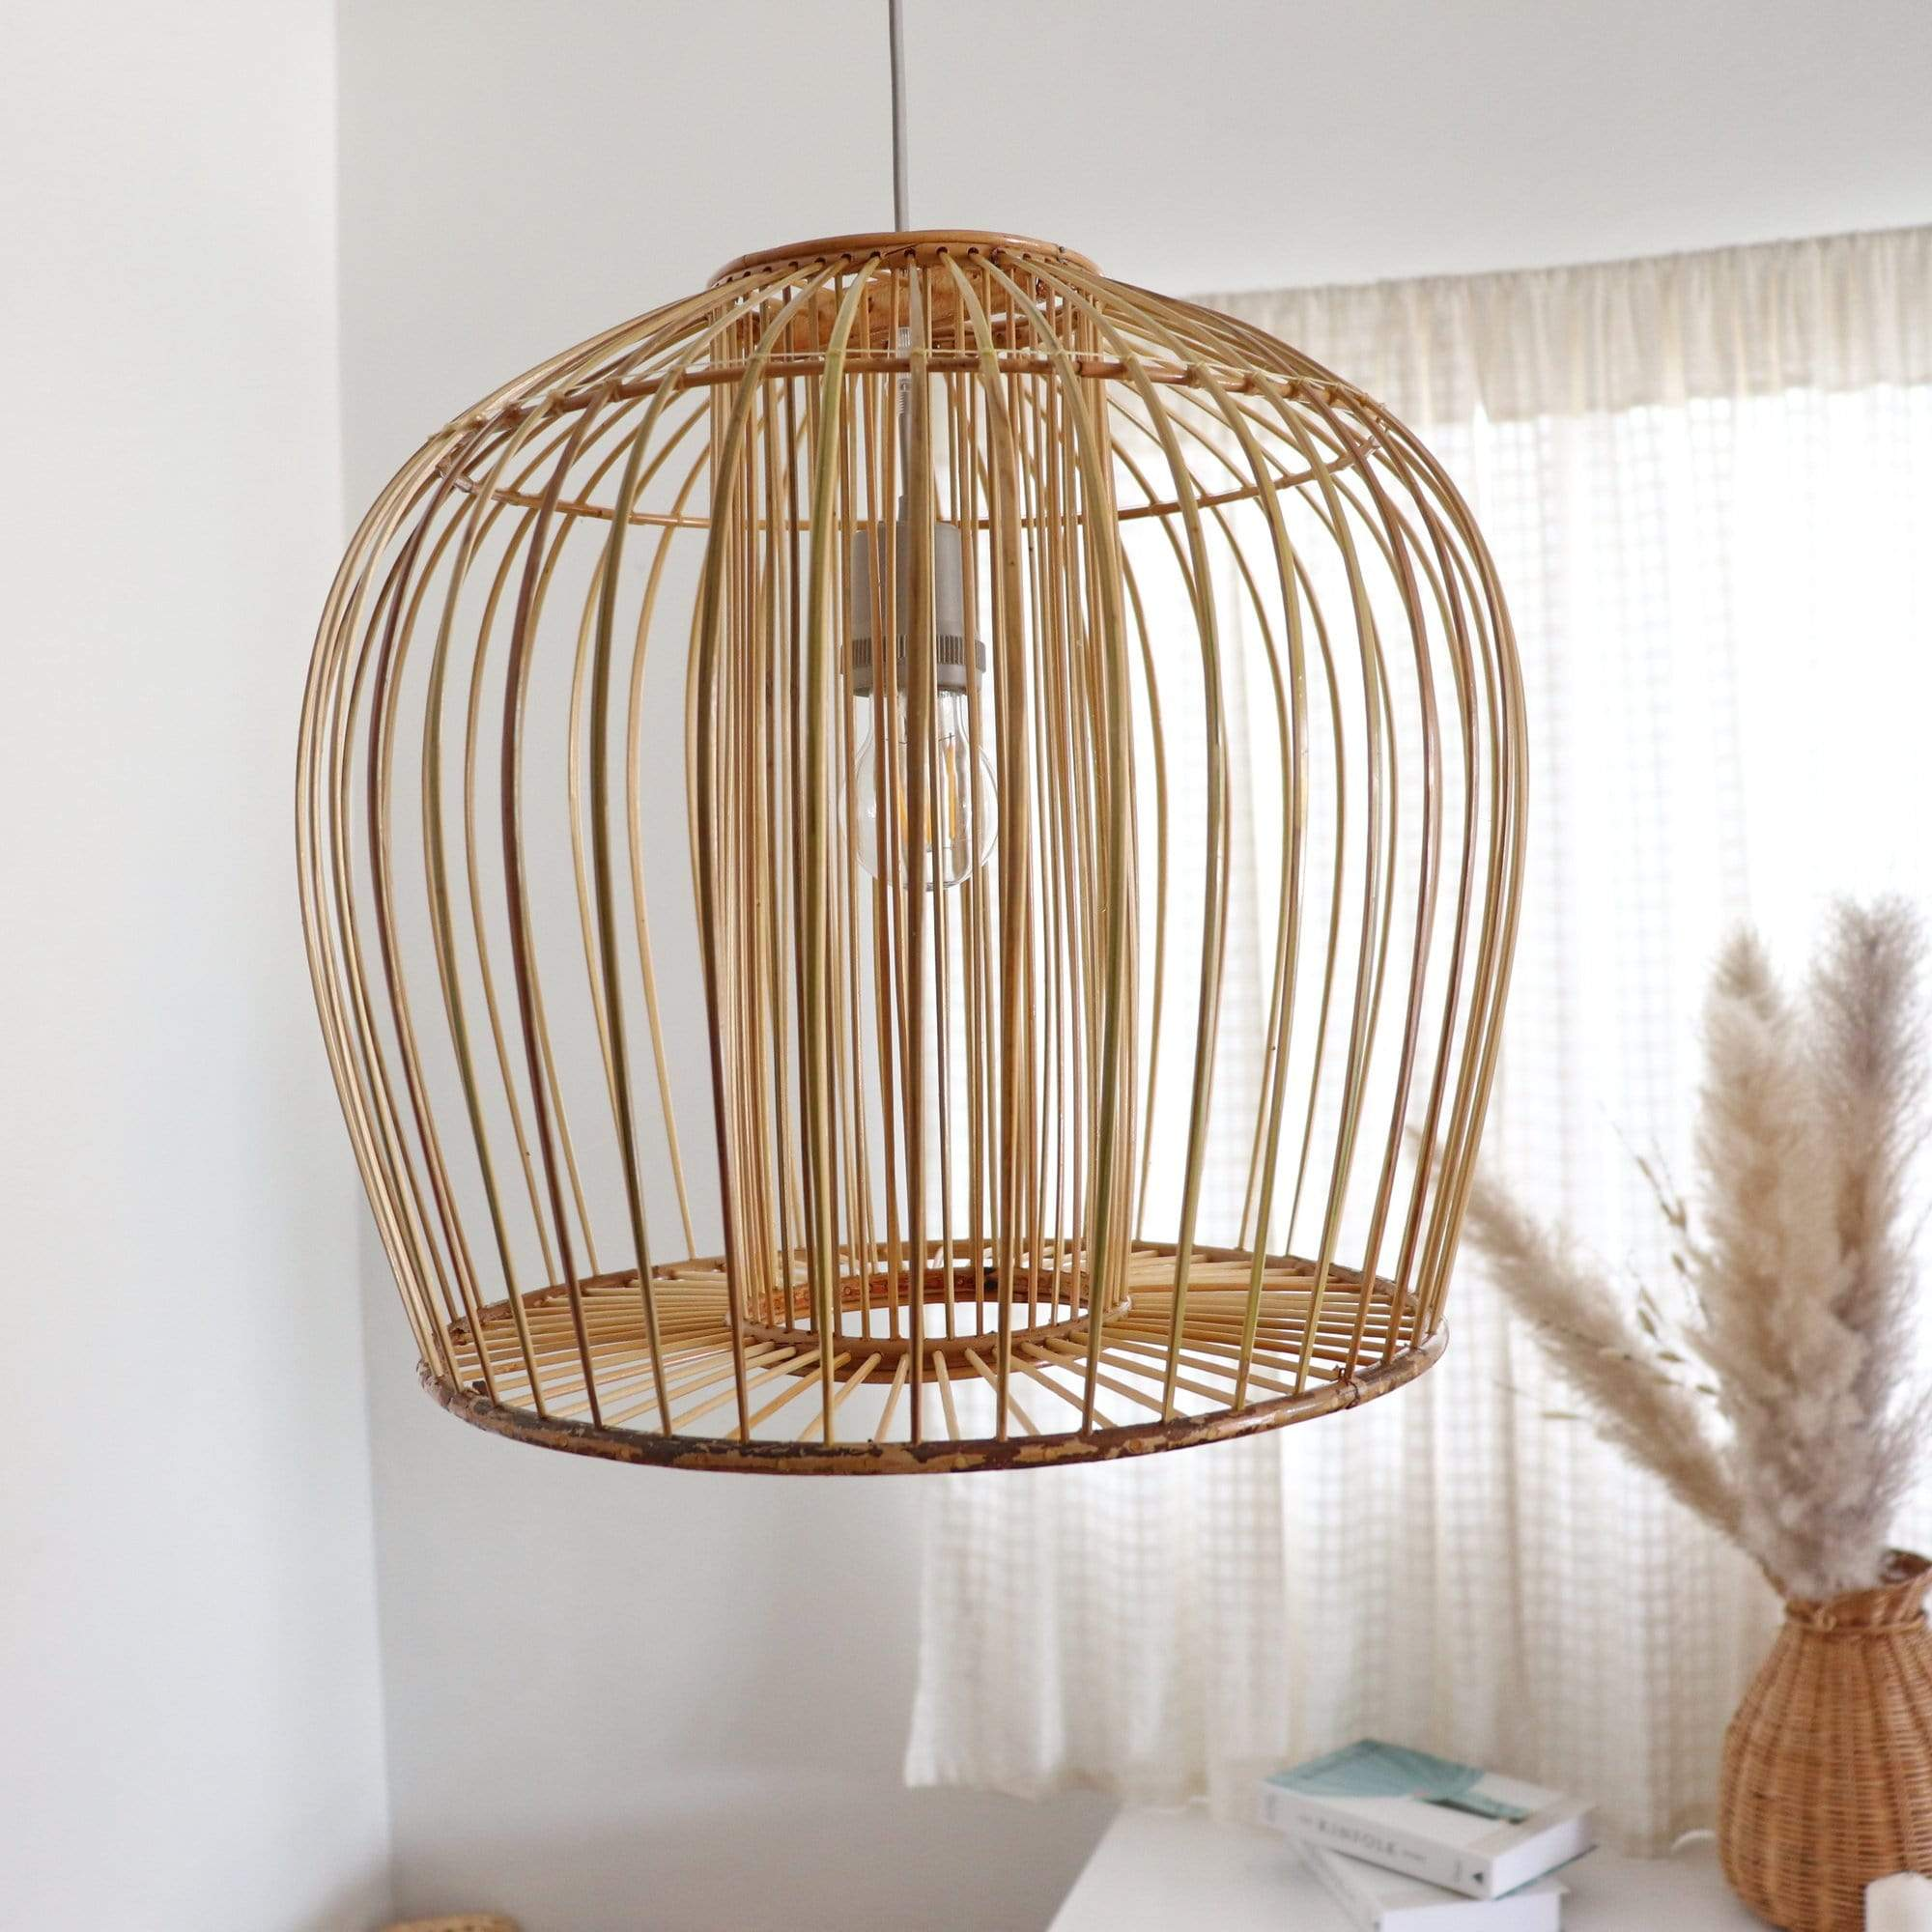 THAIHOMESHOP Bamboo Pendant Light BOONTA - BAMBOO PENDANT LIGHT